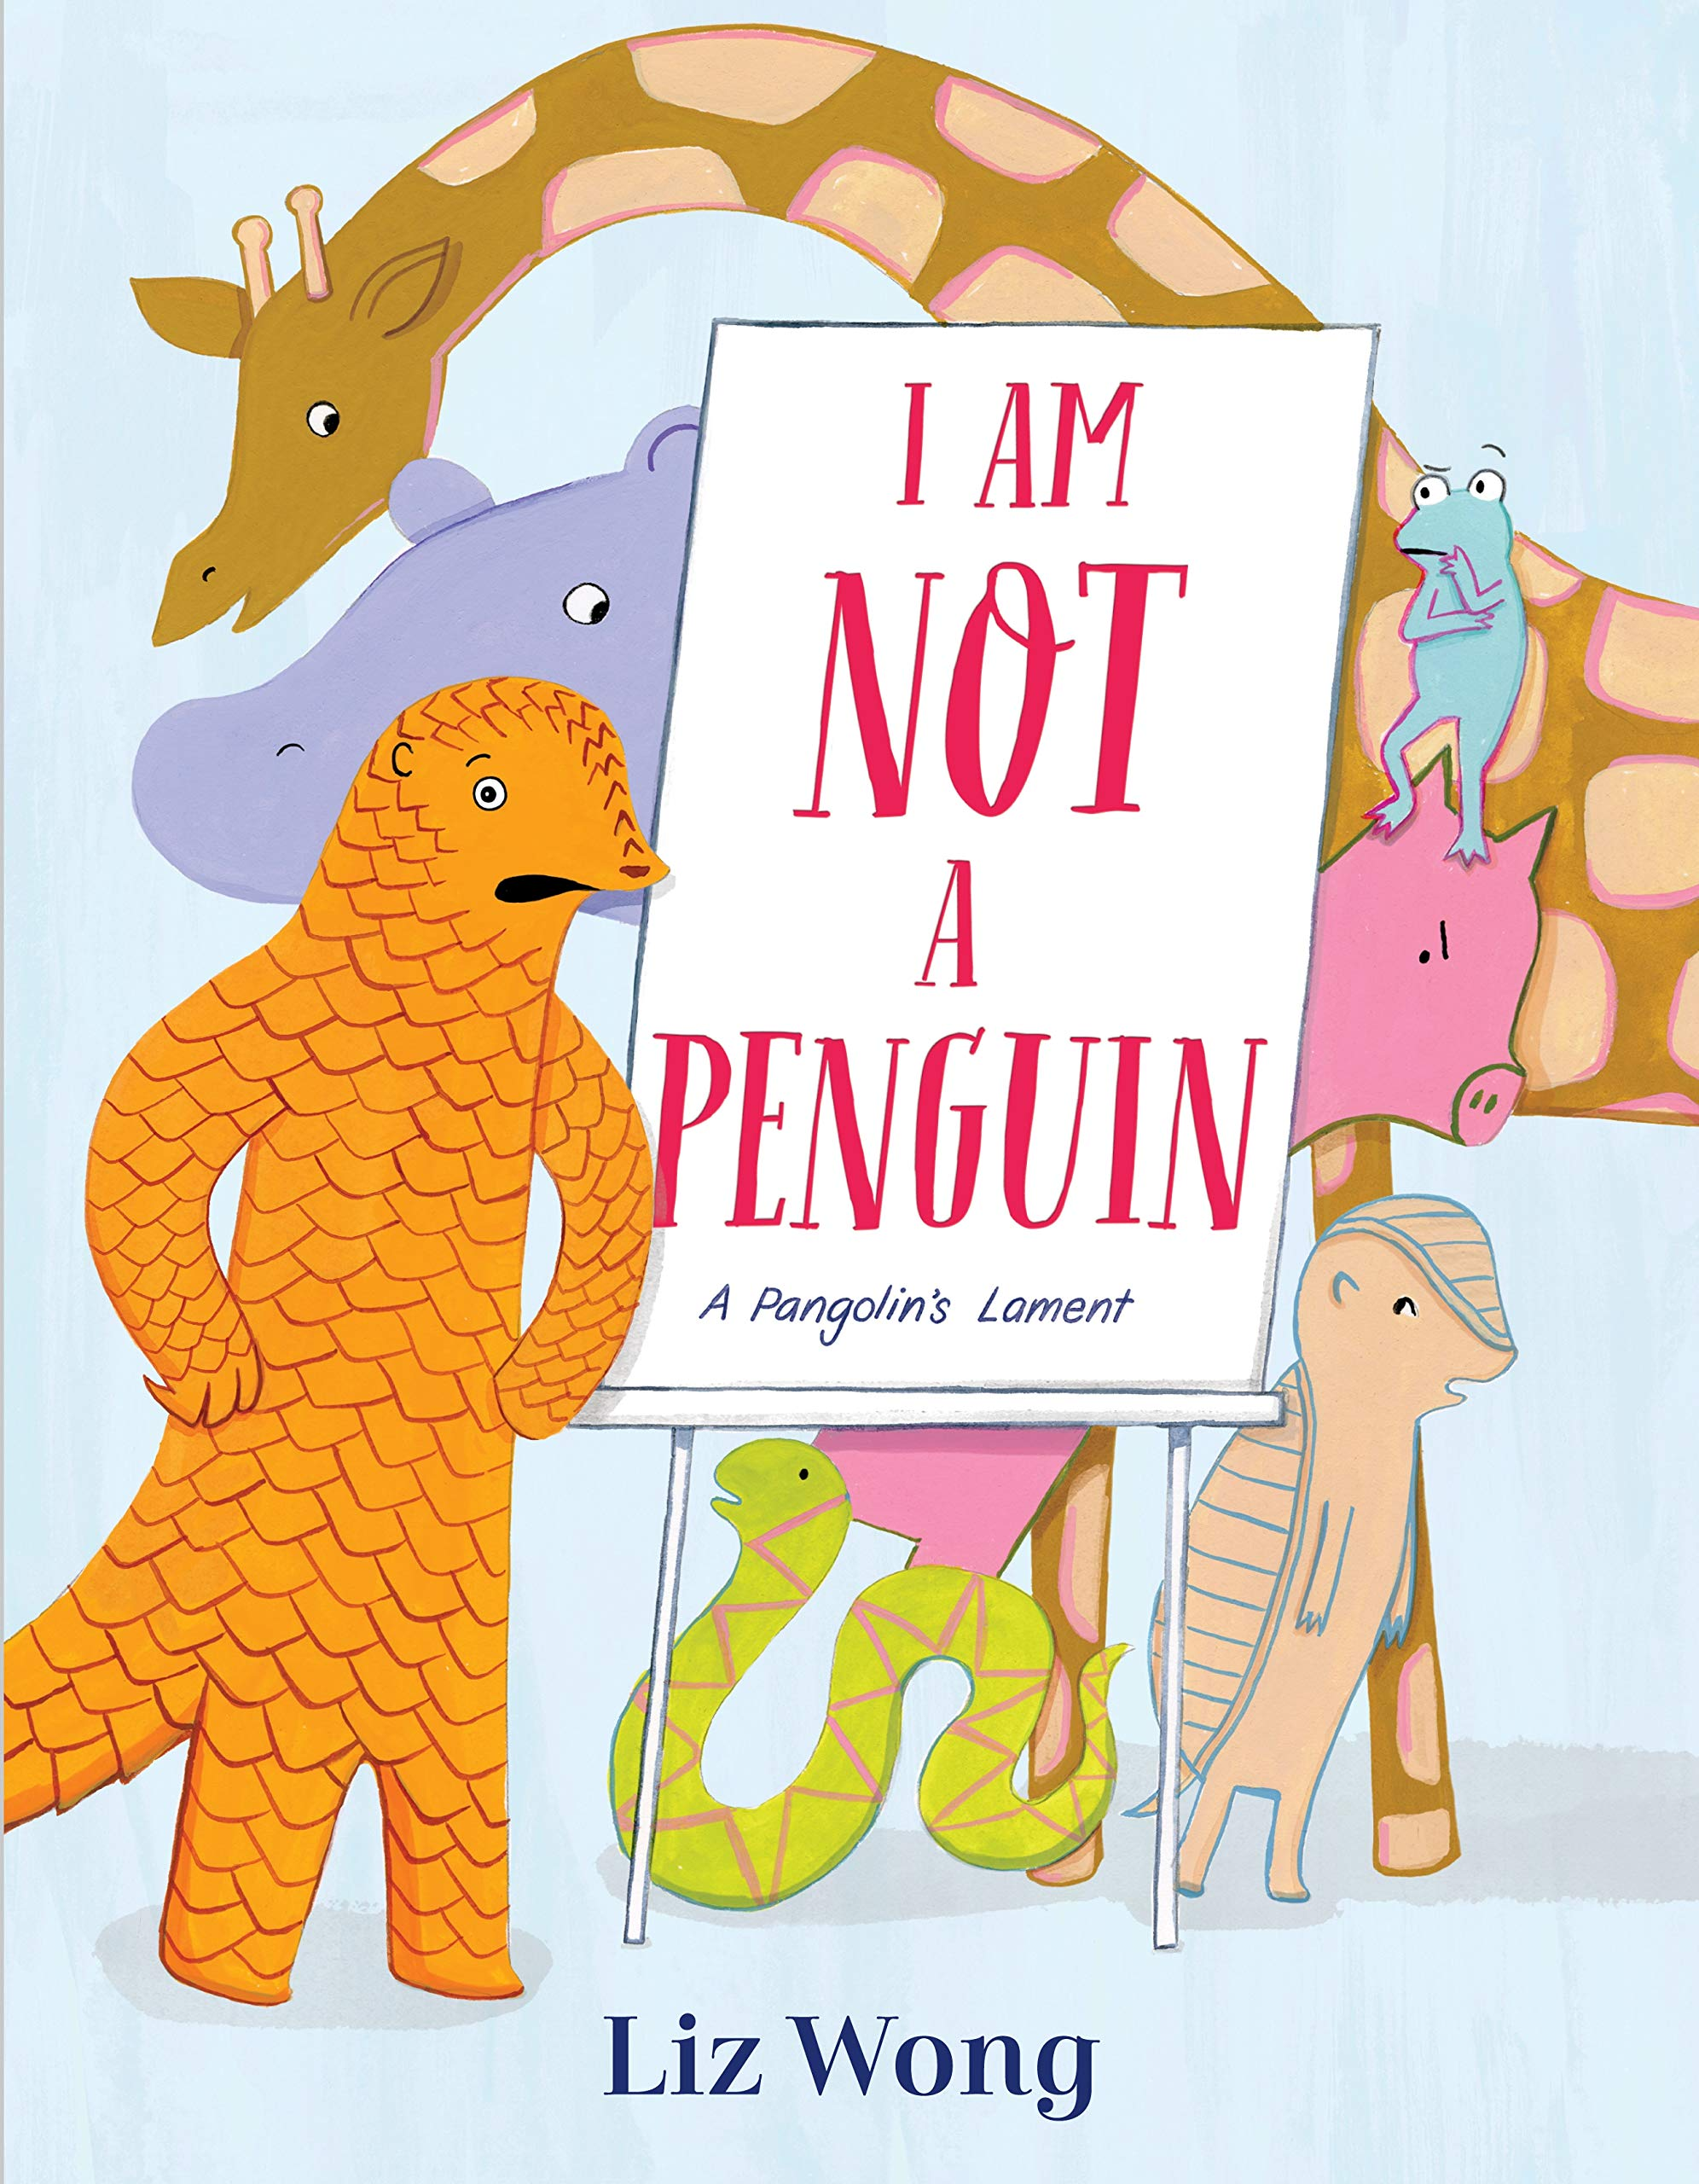 I Am Not a Penguin: A Pangolin's Lament by Liz Wong